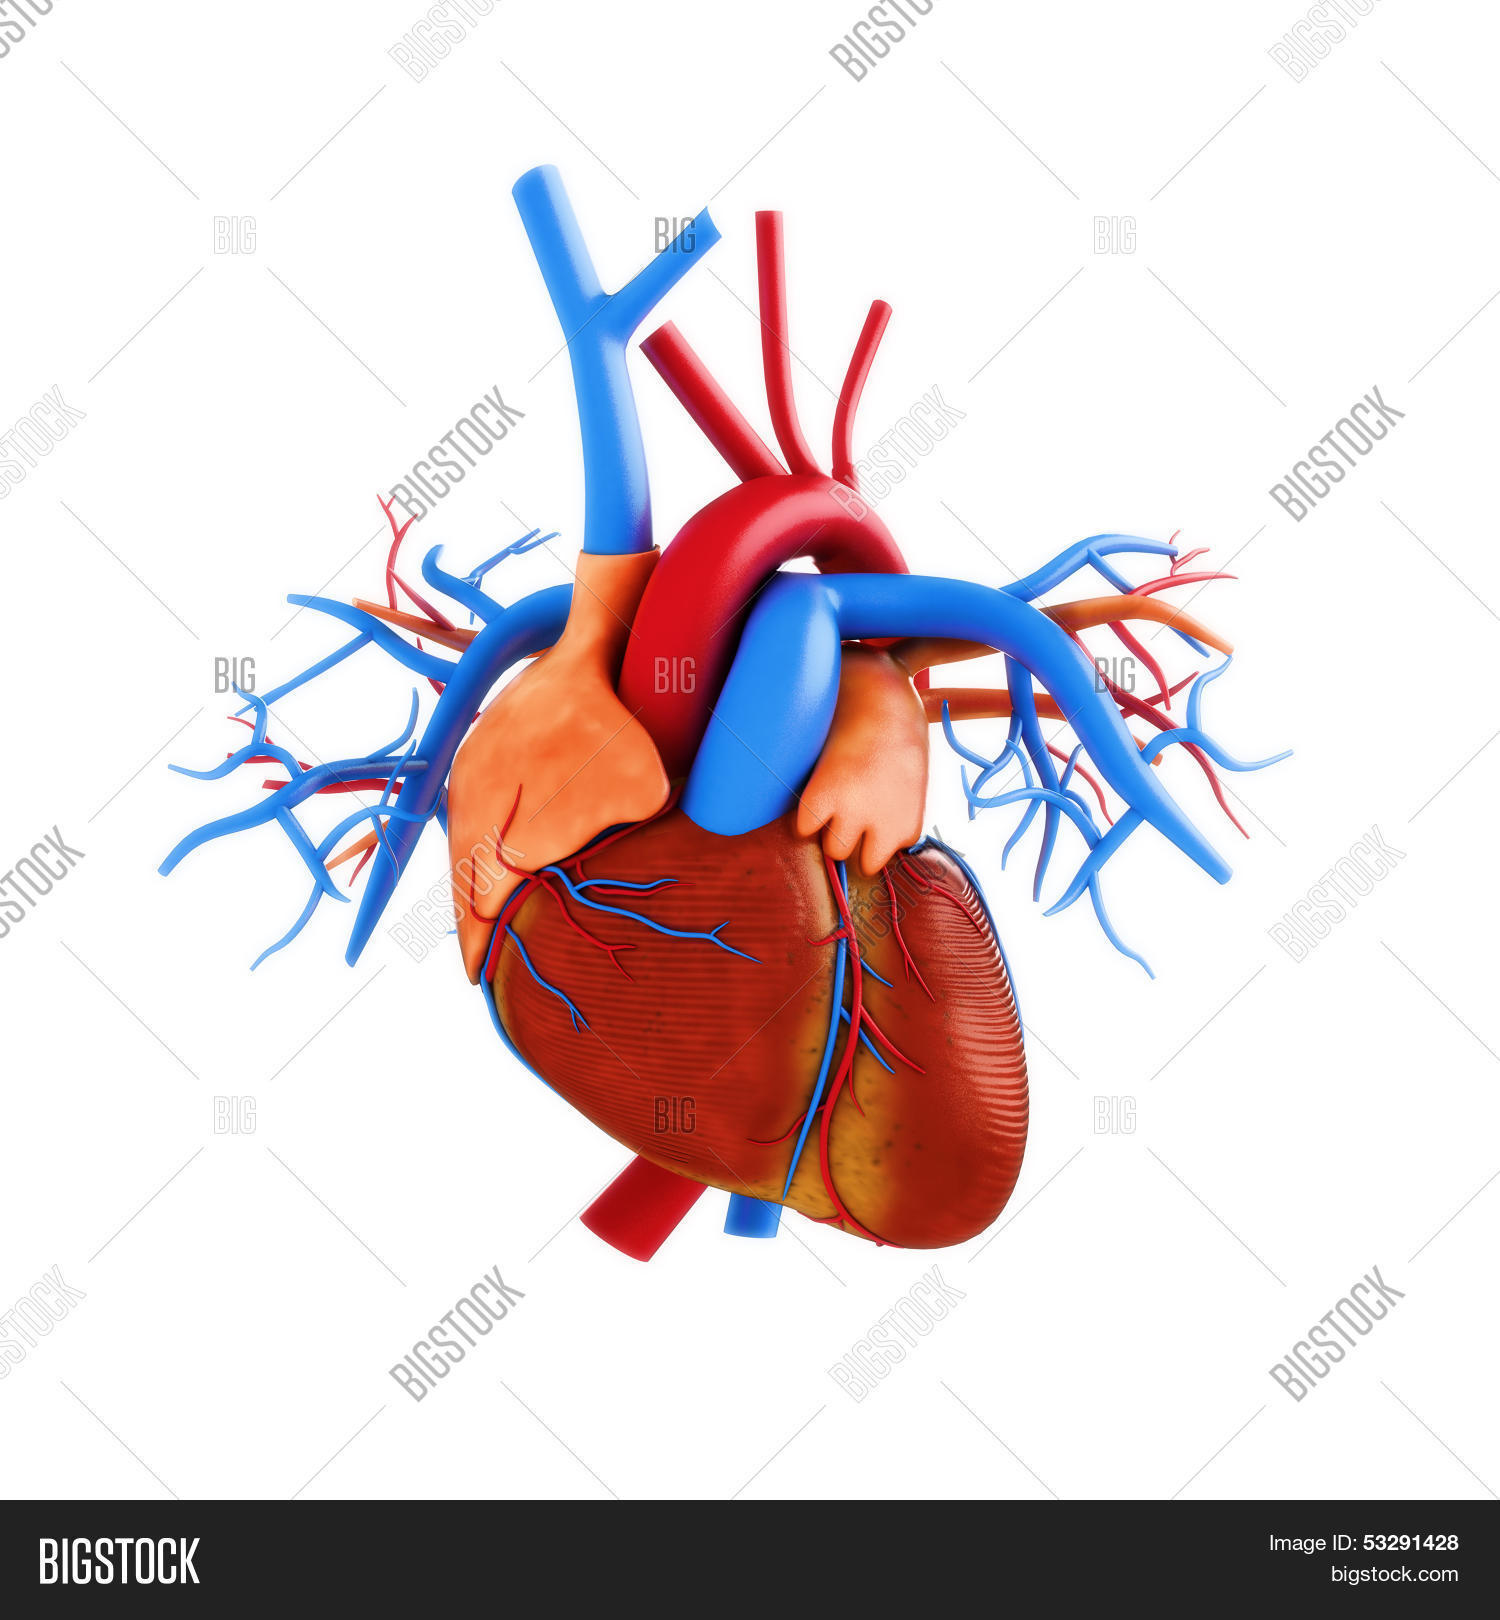 Human anatomy the heart